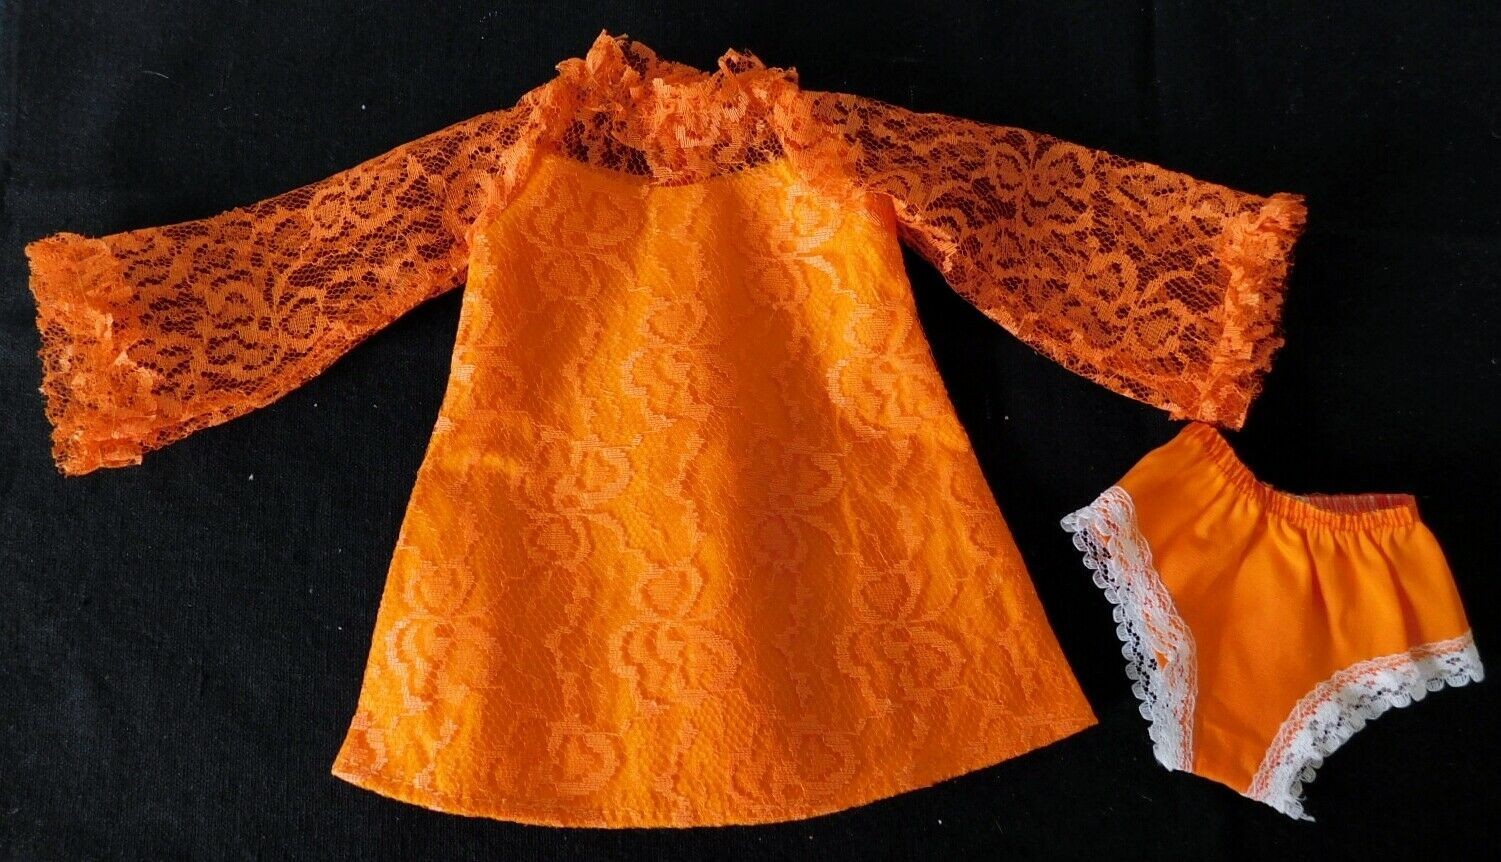 Primary image for 1969 IDEAL CRISSY ORANGE LACE DRESS & PANTIES Crisp Factory Overstock MIP